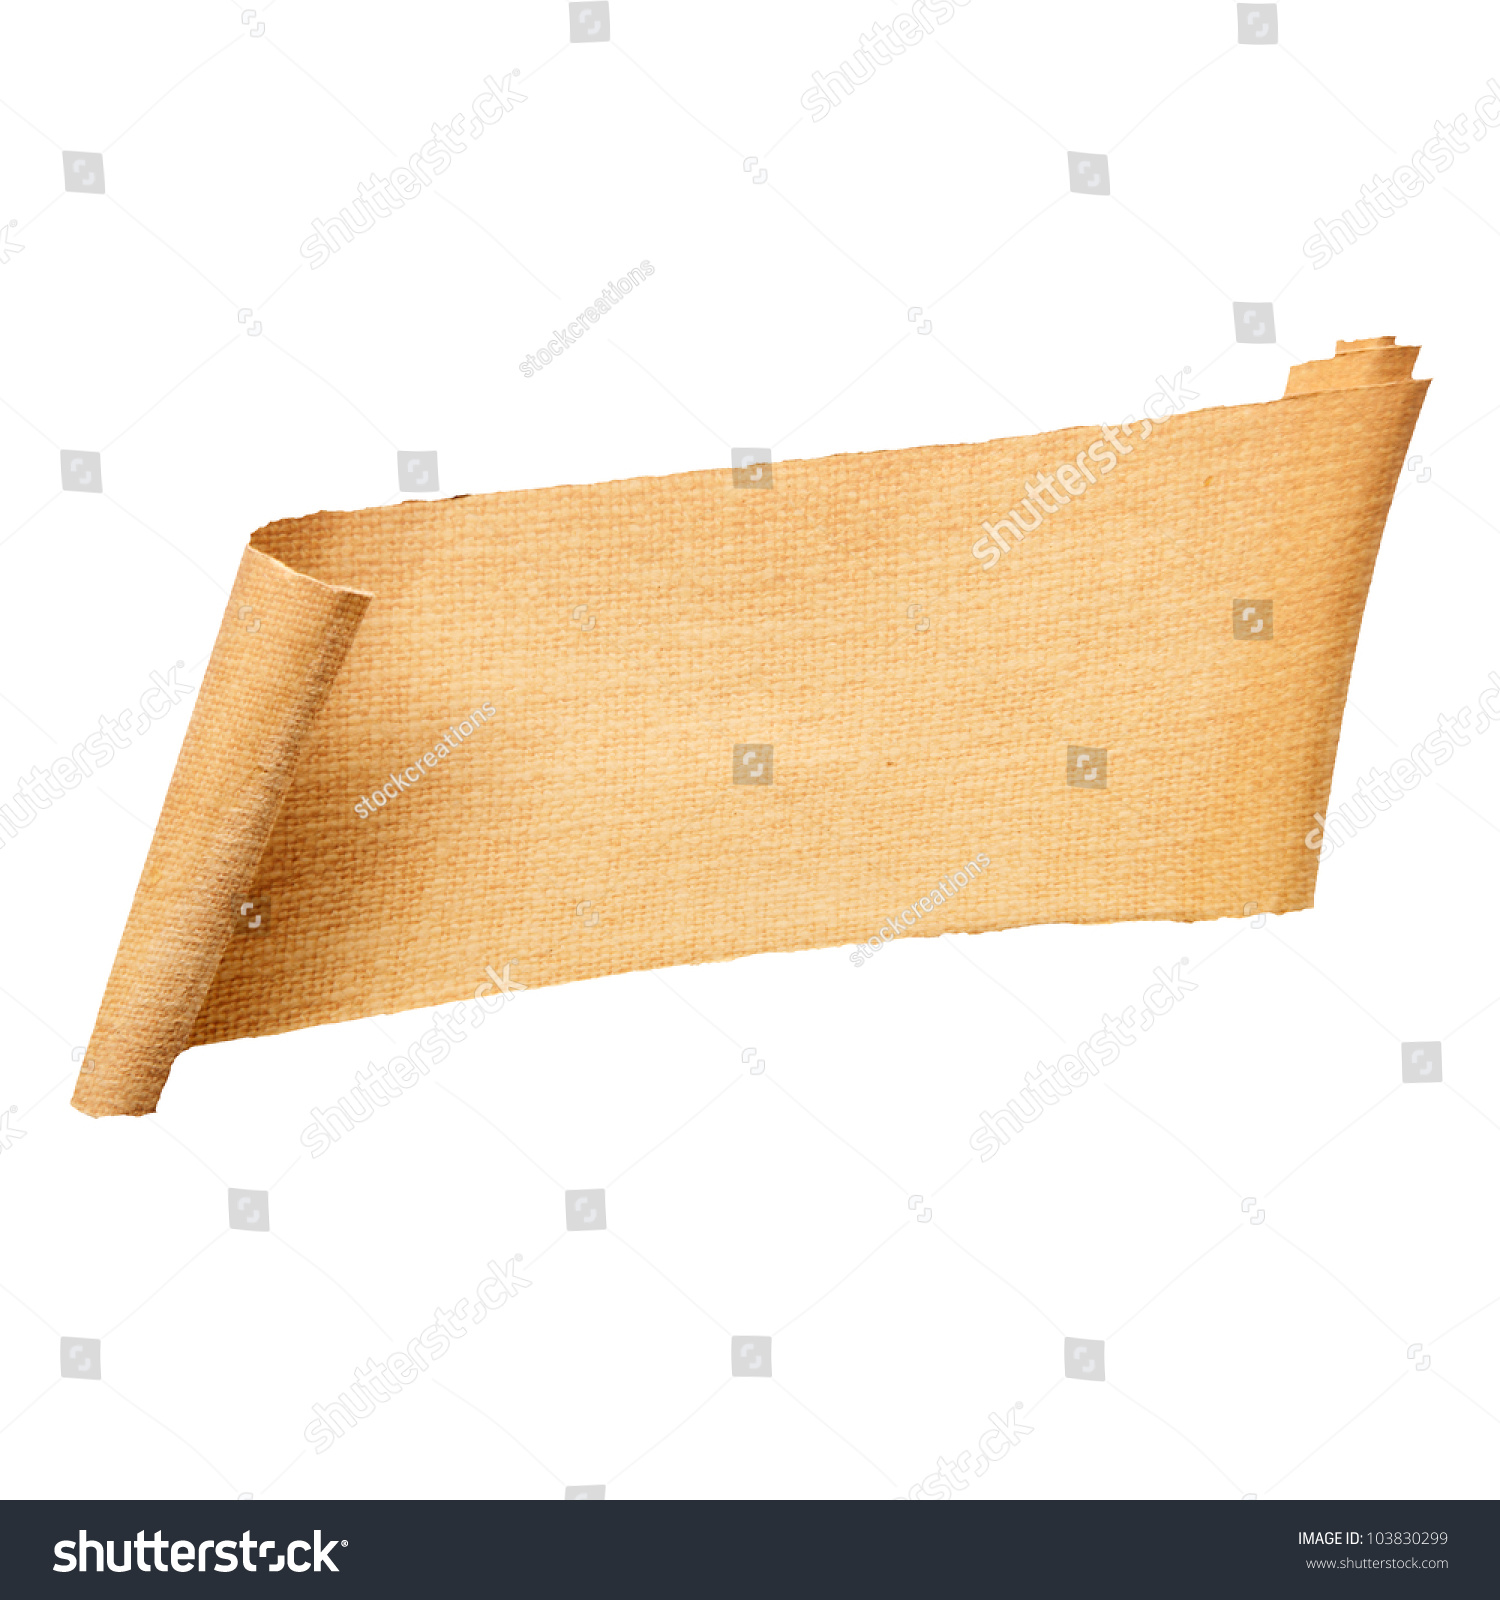 Blank Rolled Paper Banner Structure Fringed Stock Photo 103830299 ...